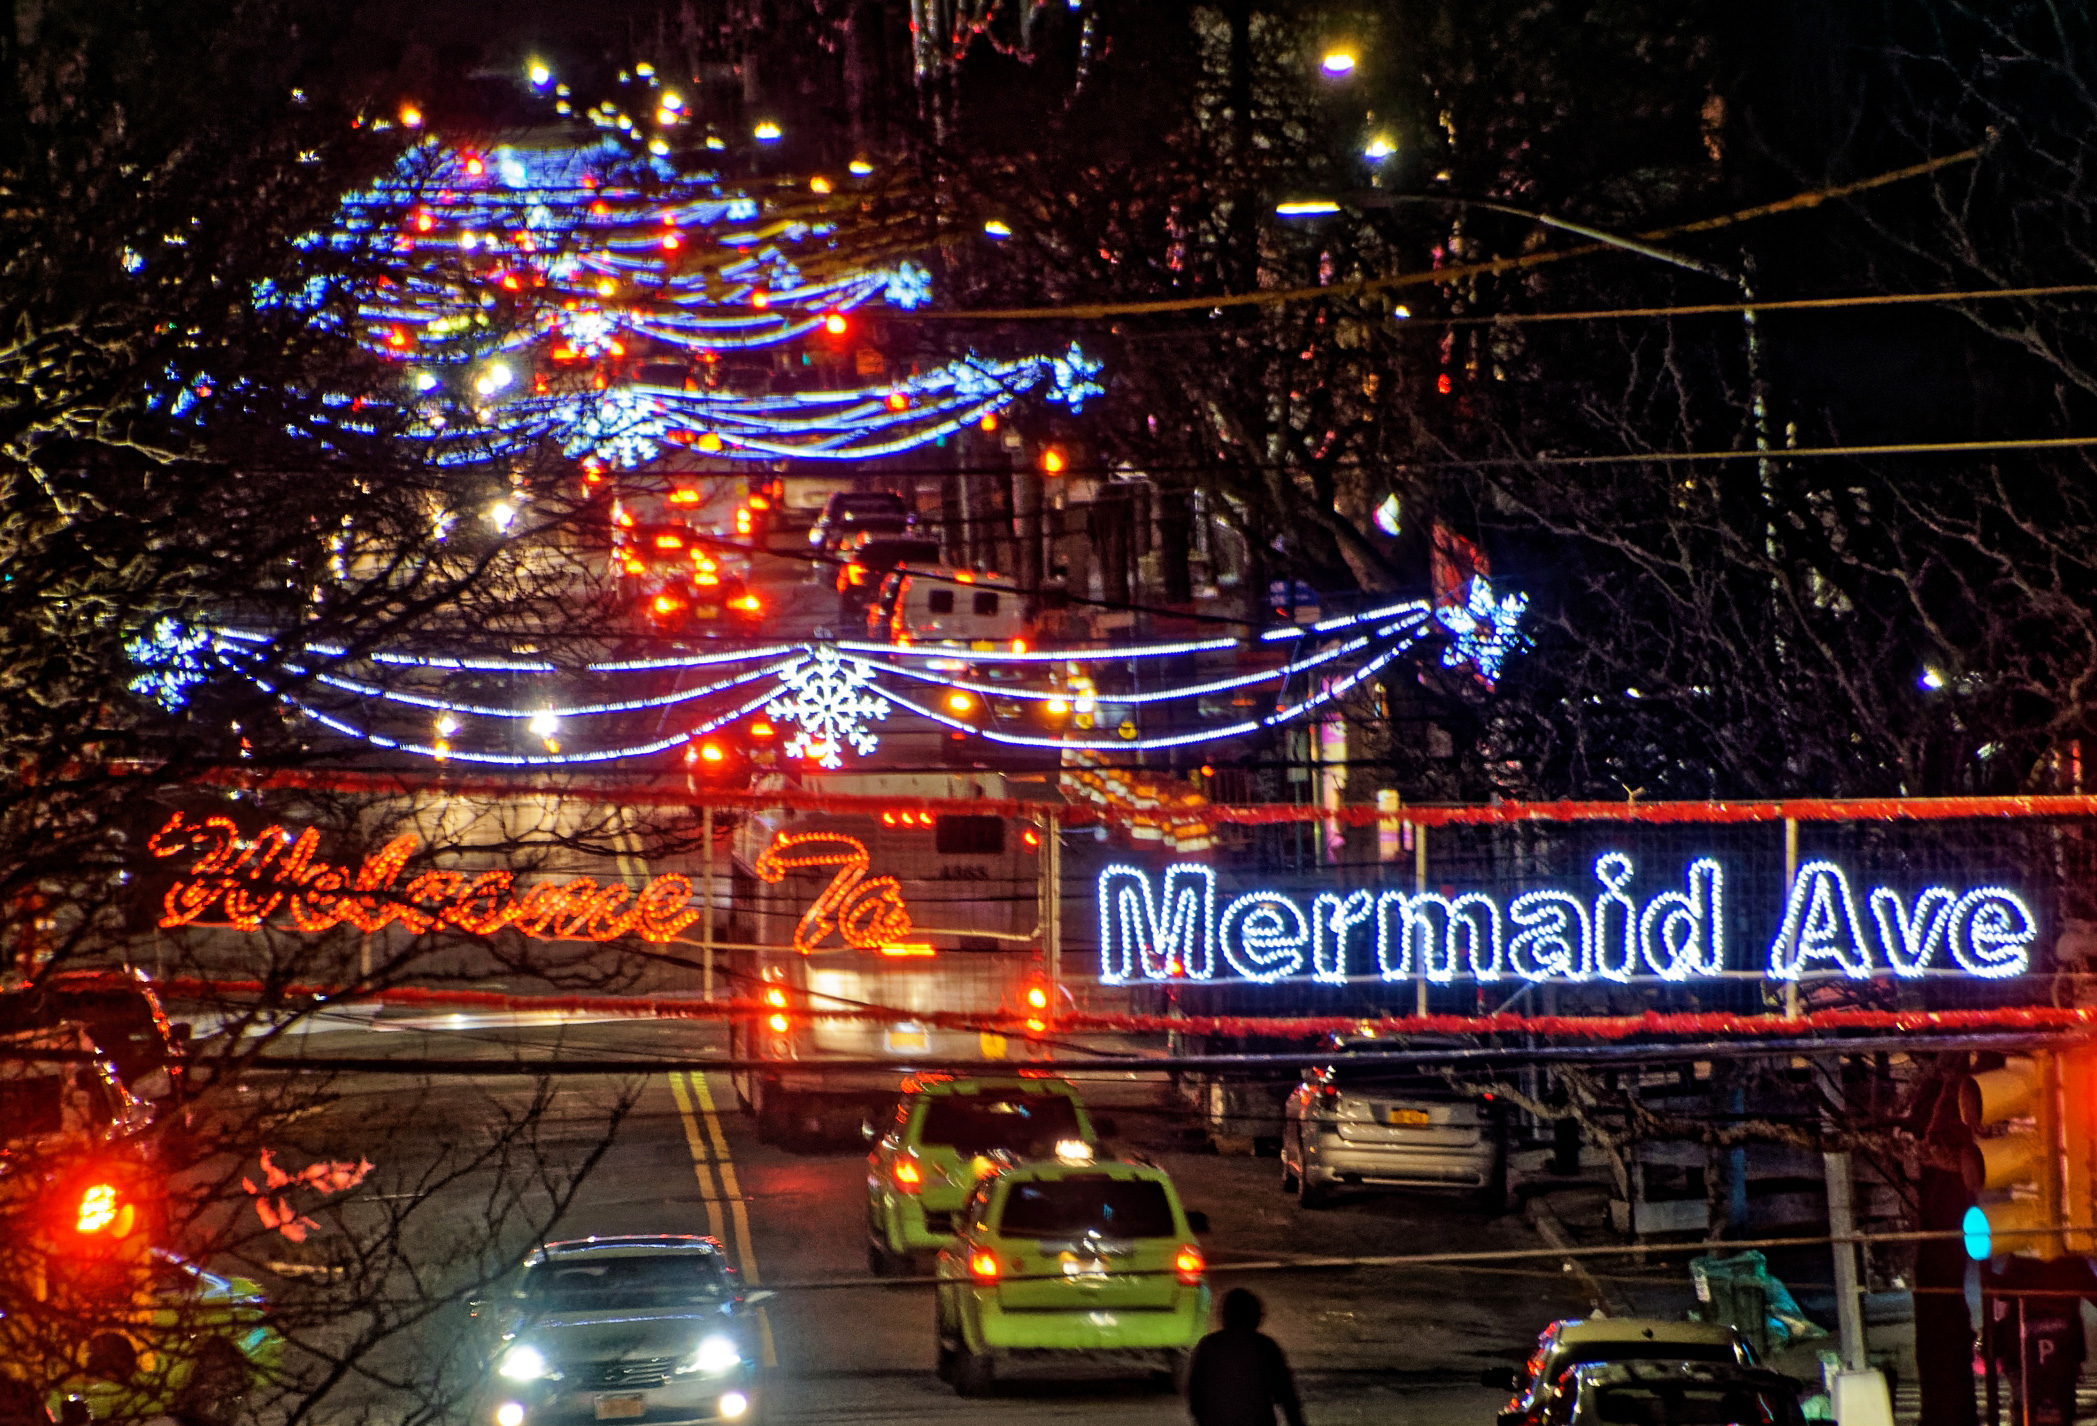 Coney Island Christmas Lights 2019 After more than 20 years, Coney Island brings back holiday lights